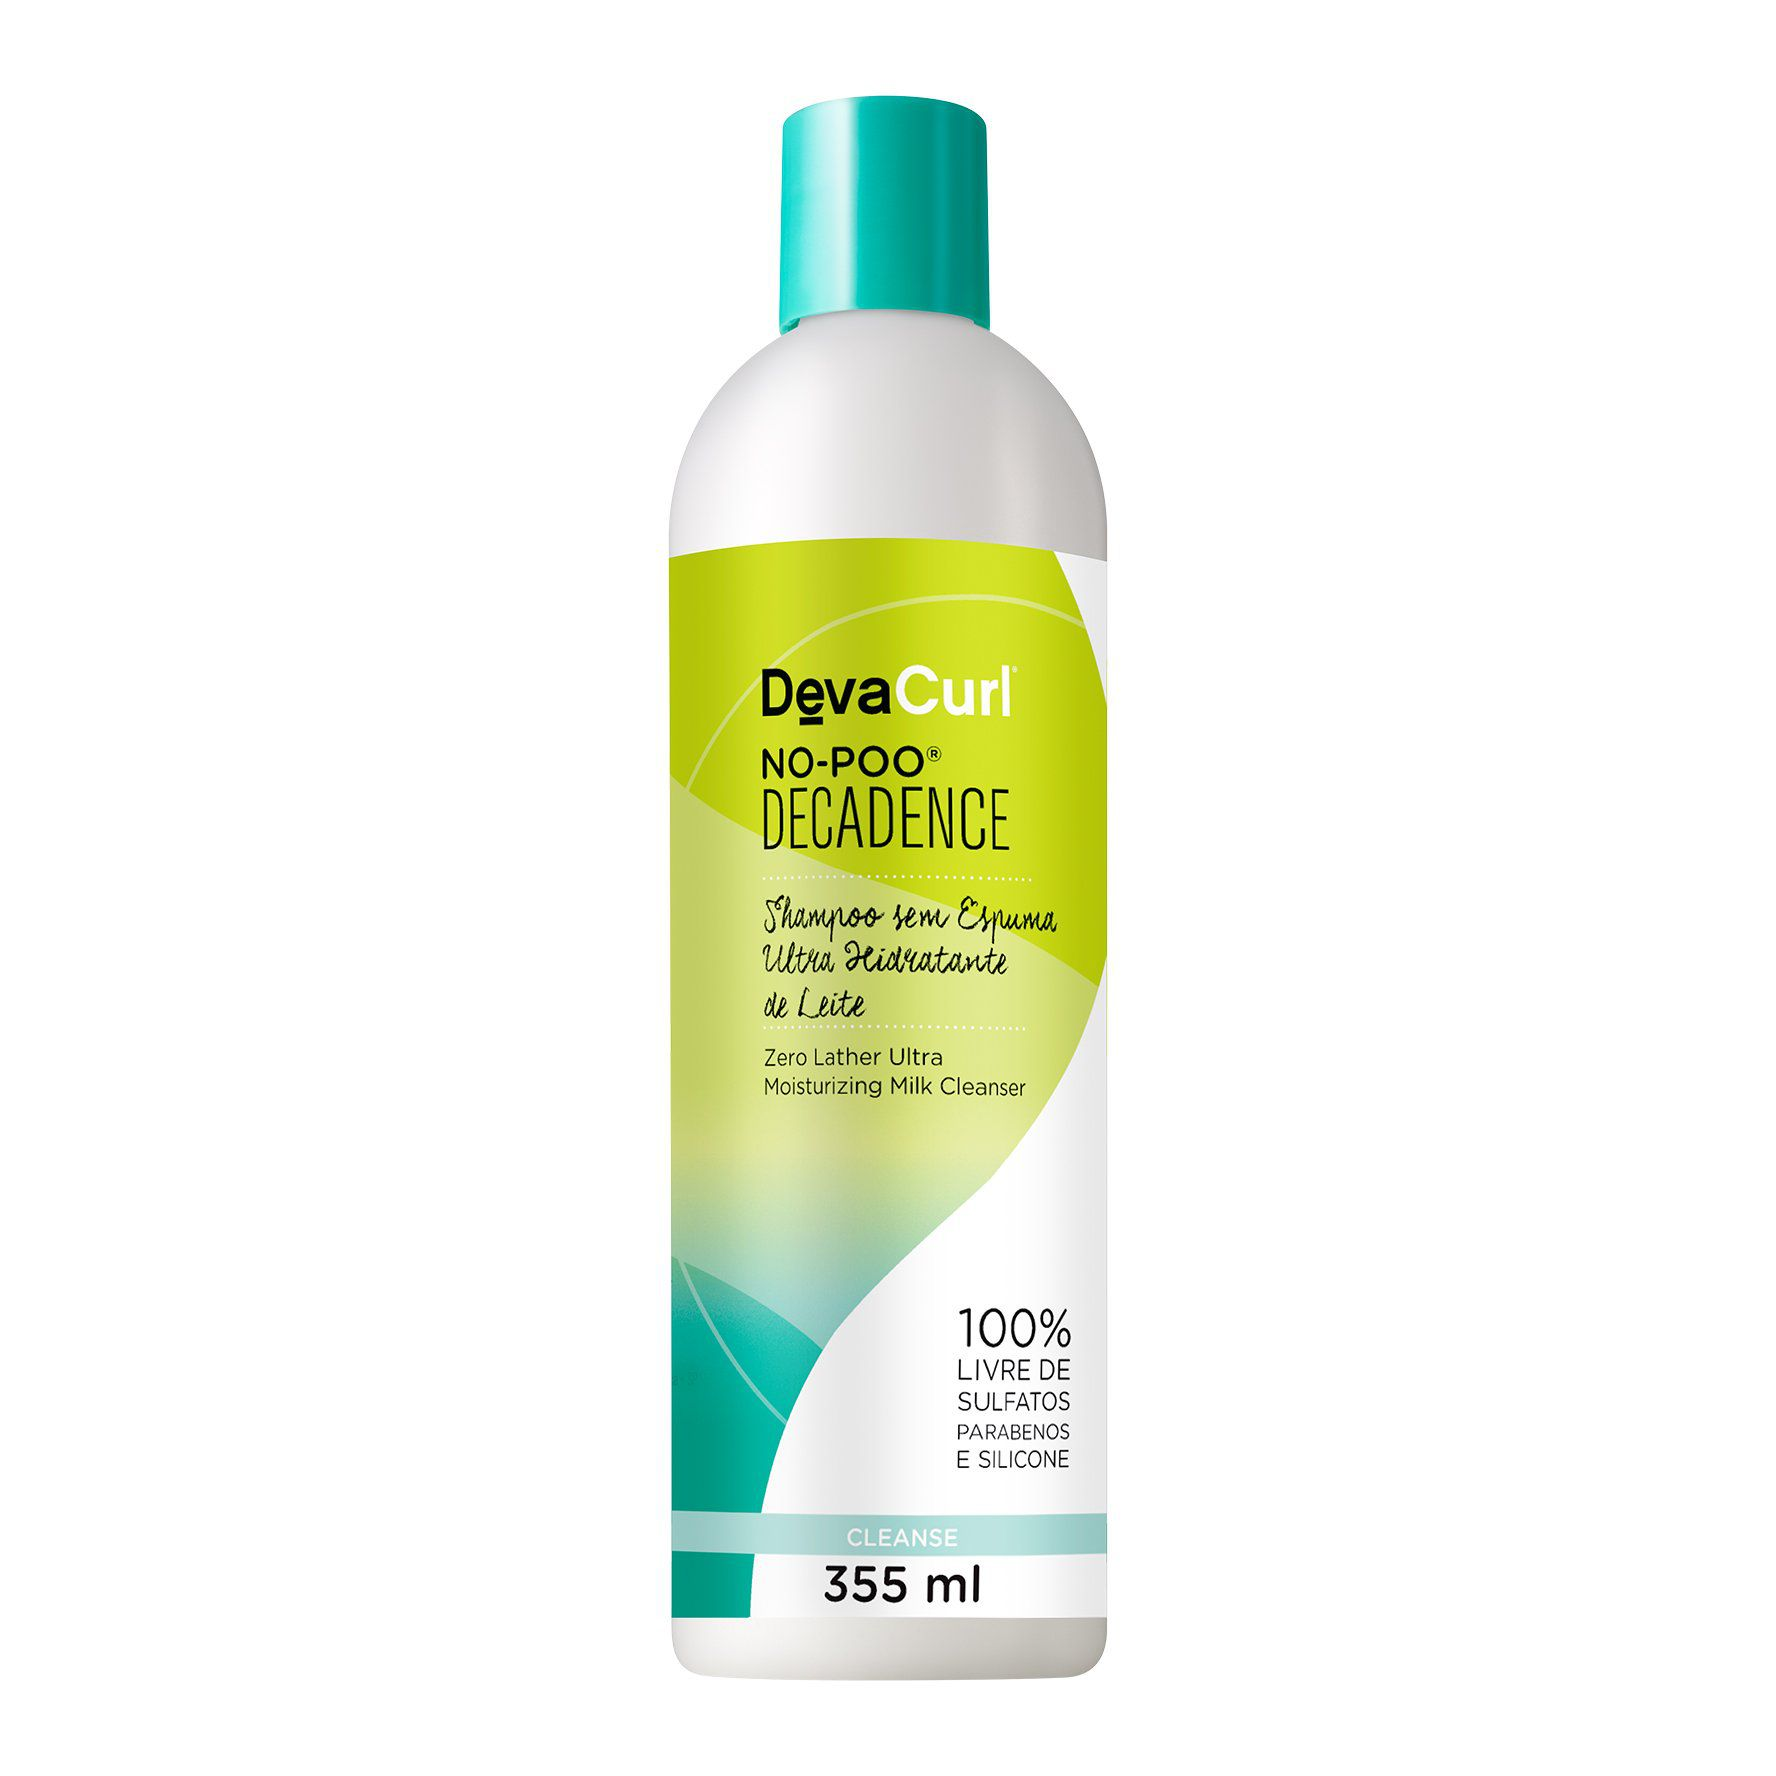 Deva Curl Shampoo No-Poo Decadence 355ml